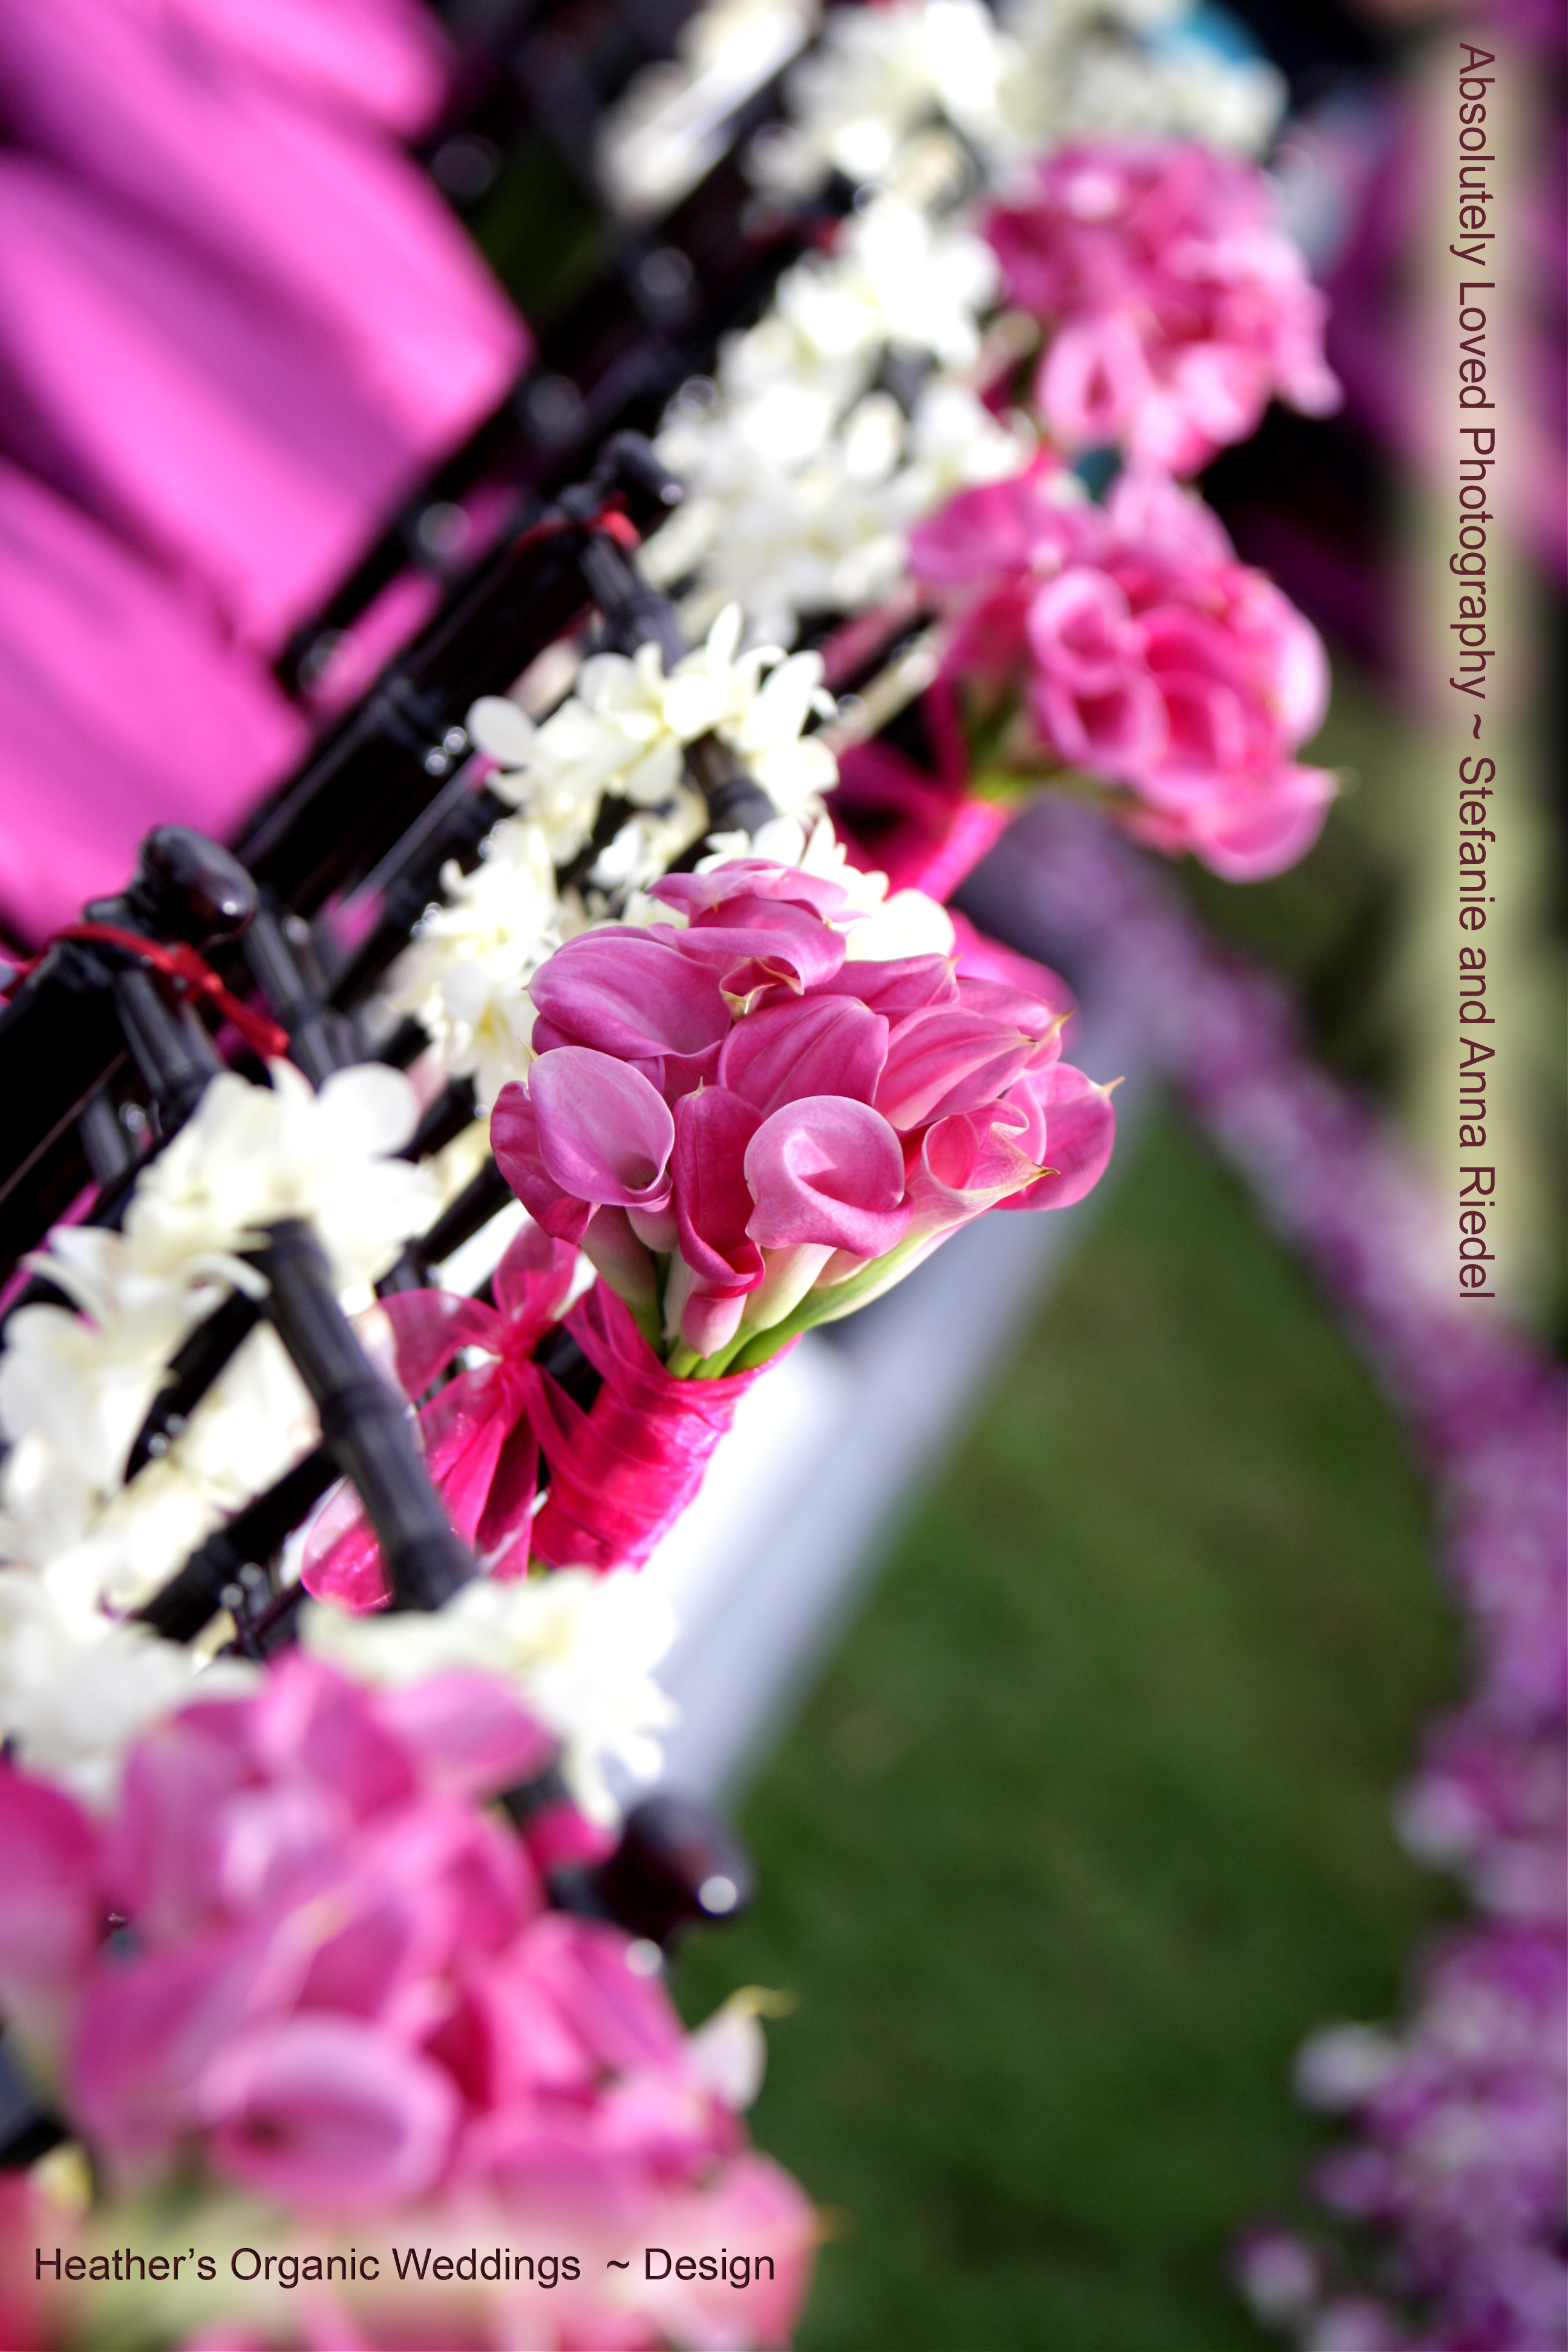 Ceremony, Reception, Flowers & Decor, Photography, pink, red, black, And, Anna, 808, Stefanie, Riedel, Wwwabsolutelylovedcom, Loved, Absolutely, 779, 1895